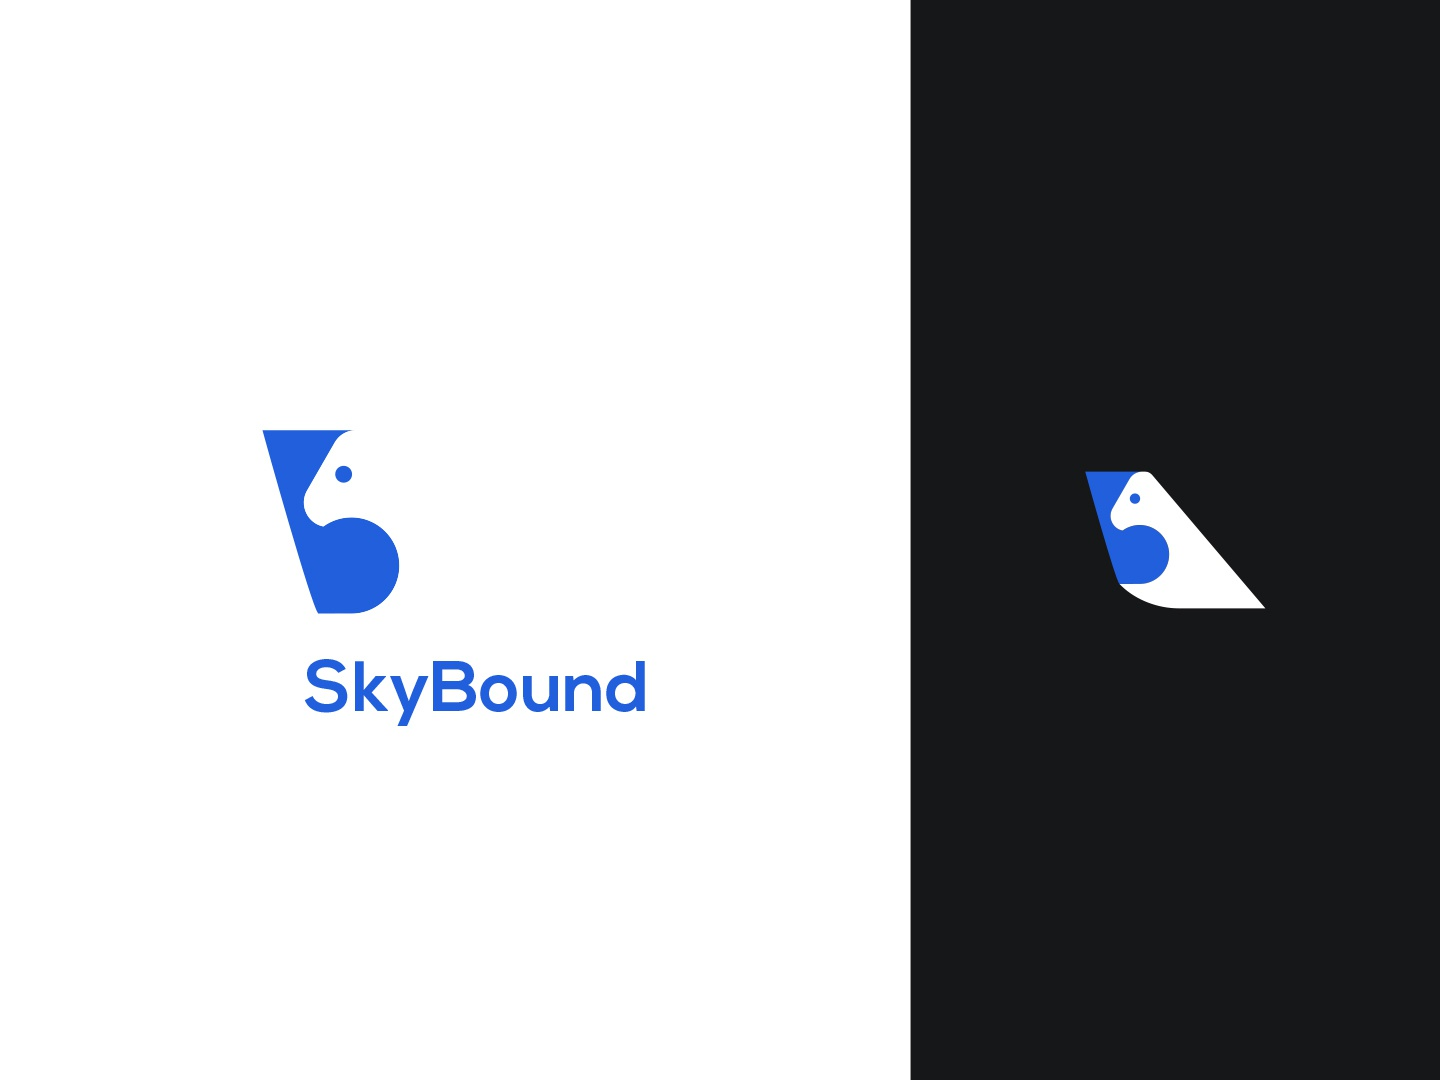 SkyBound airplane boovpoov flying simple clean airtrack pioneer dailylogochallenge day12 airplain logo wings airline skybound